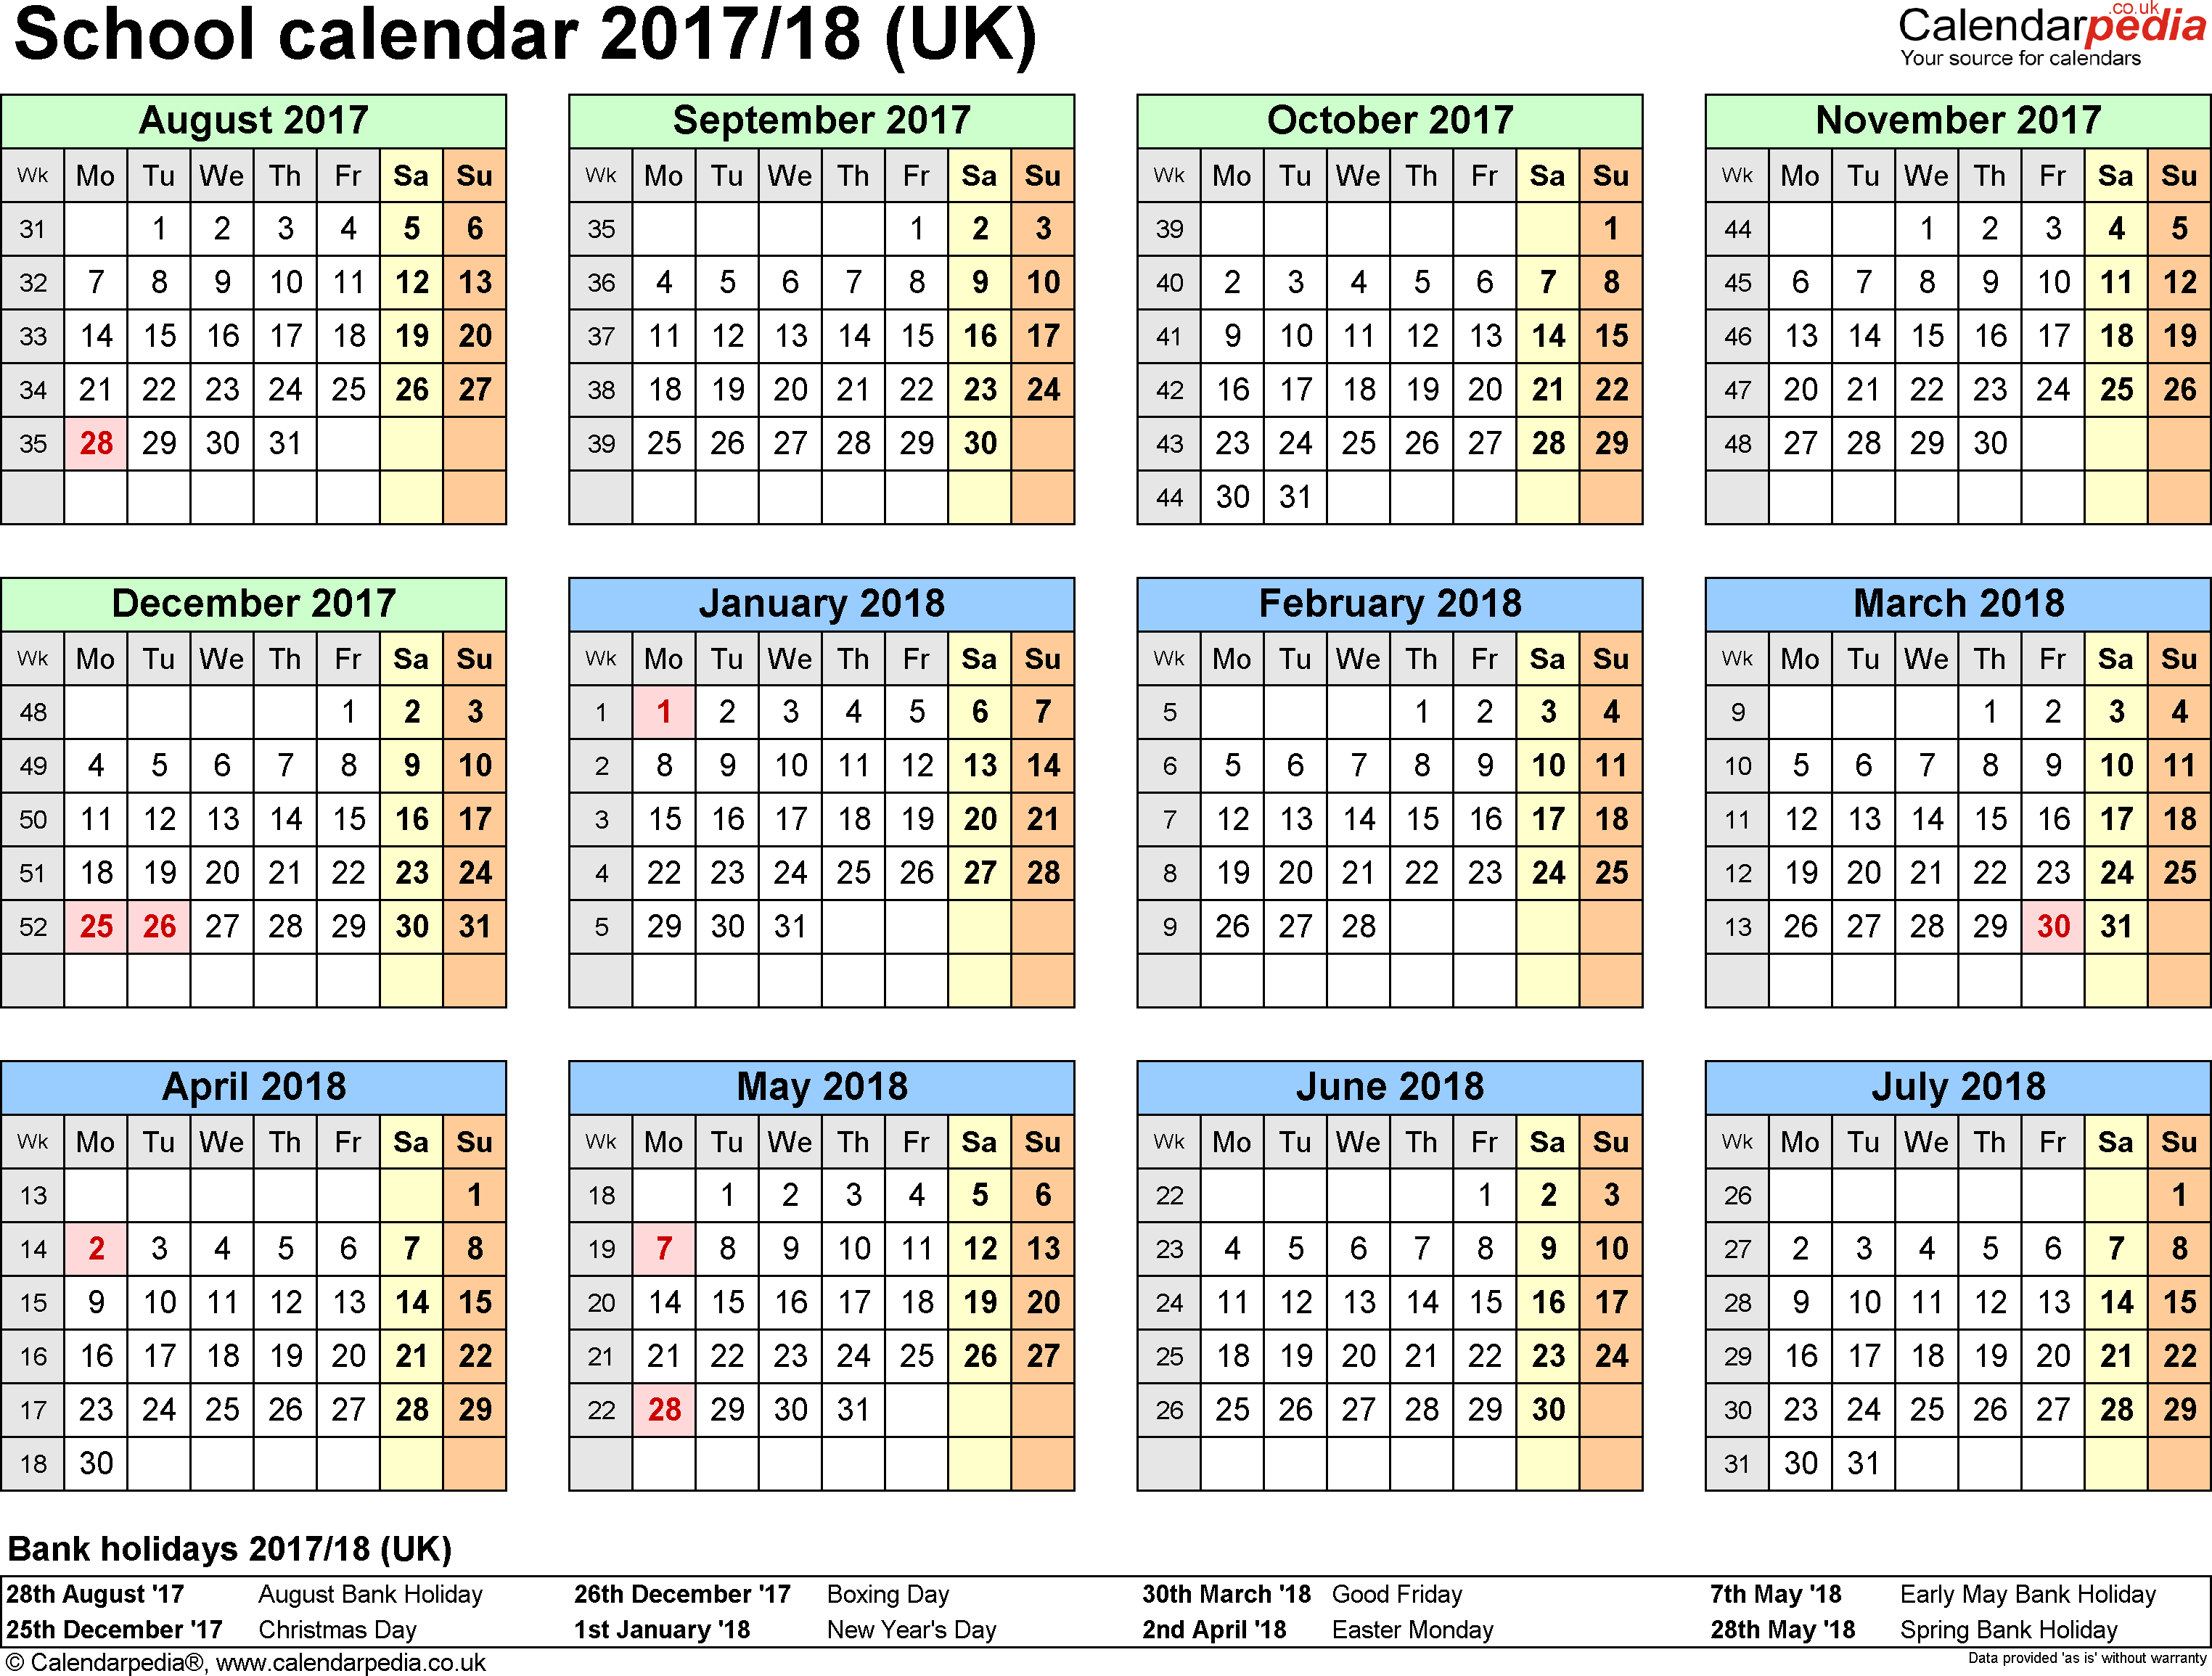 Template 4: School year calendars 2017/18 as Word template, year at a glance, 1 page